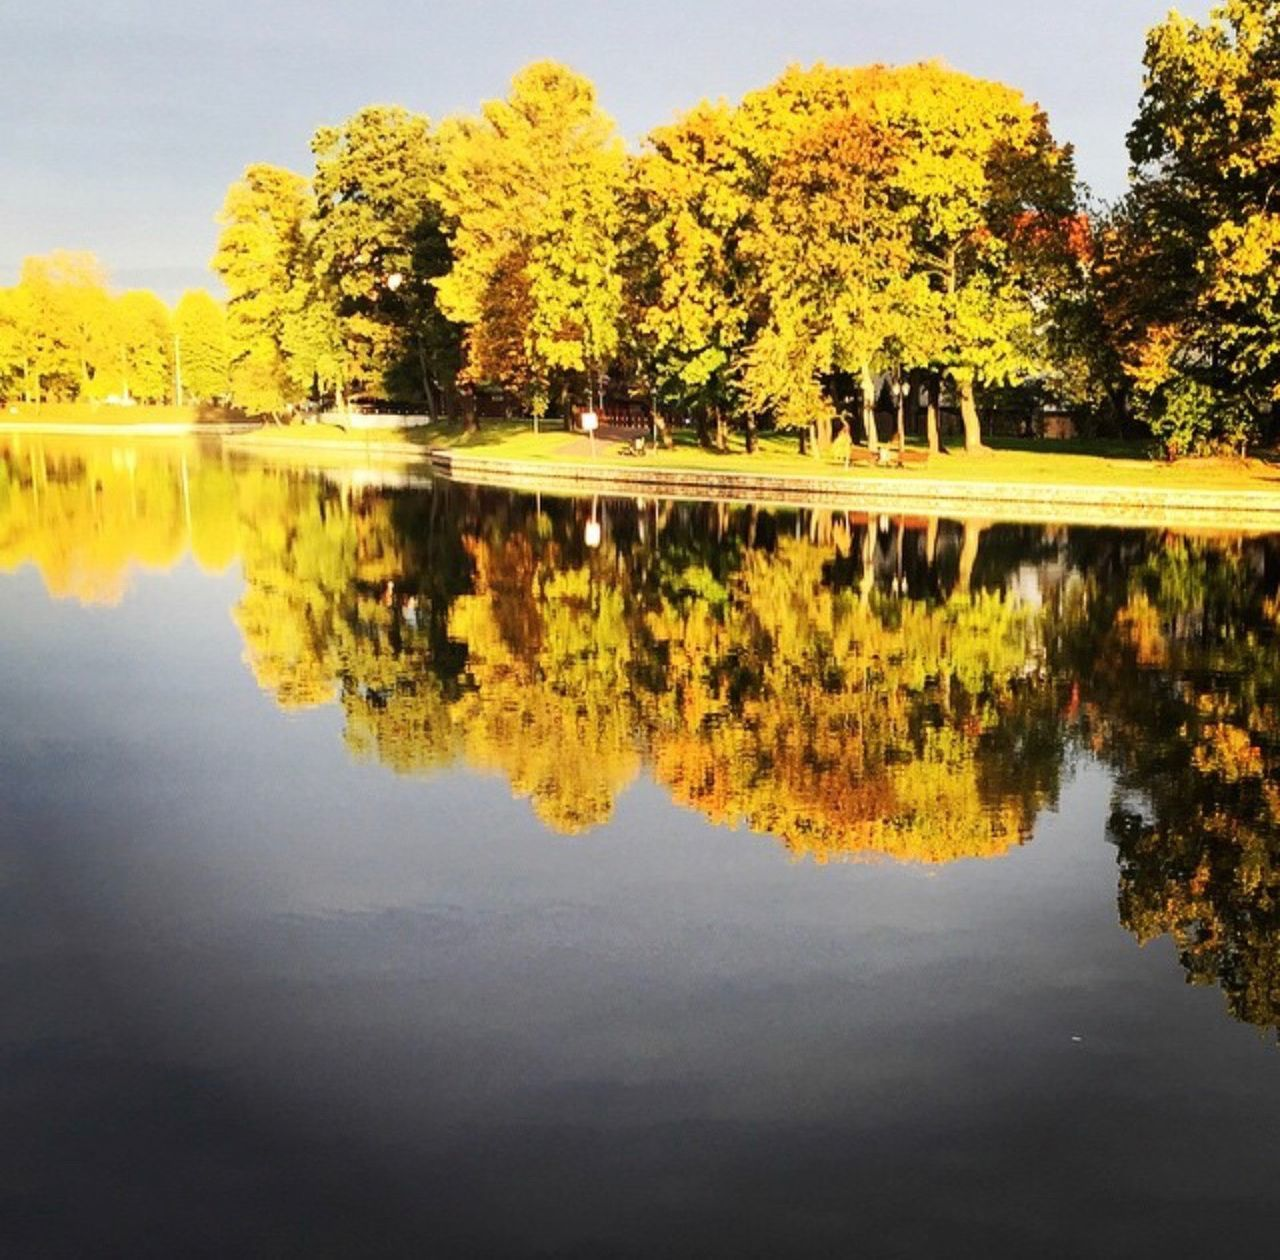 reflection, tree, water, plant, lake, waterfront, tranquility, beauty in nature, nature, tranquil scene, symmetry, scenics - nature, no people, autumn, day, growth, idyllic, outdoors, sky, change, reflection lake